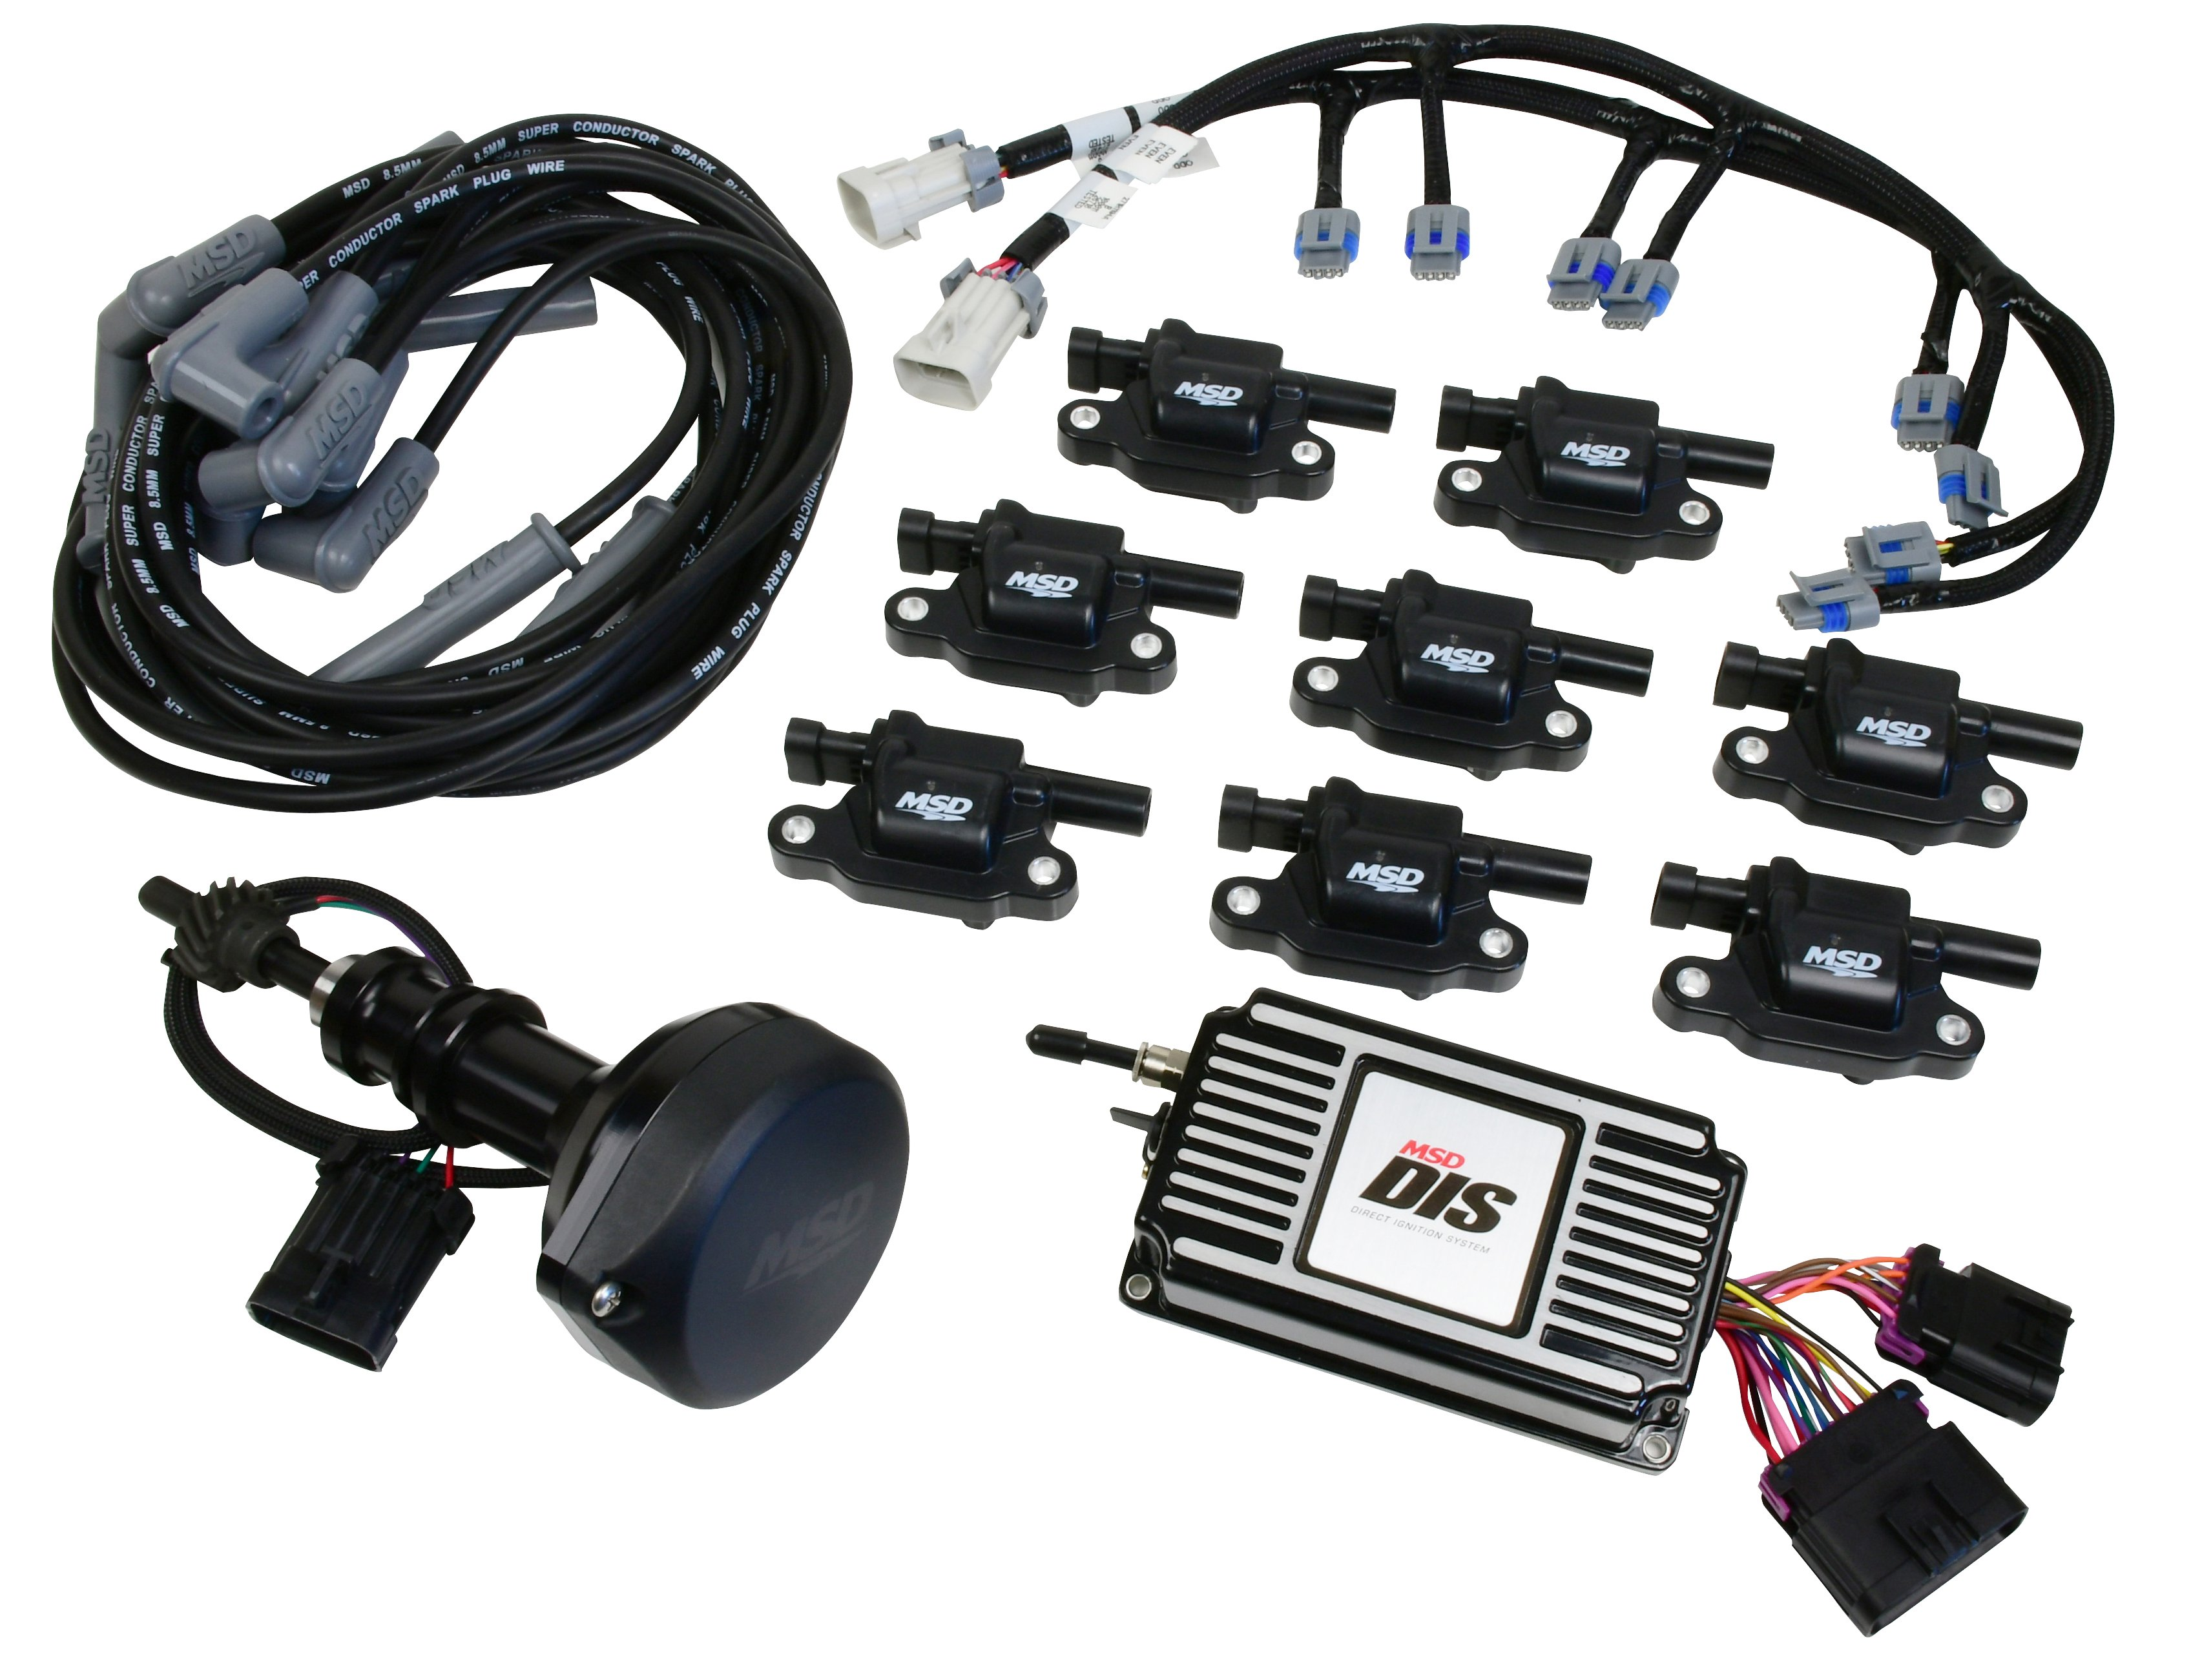 dis kit s block ford, 289 302, black Wiring Harness For Ford Bronco 289